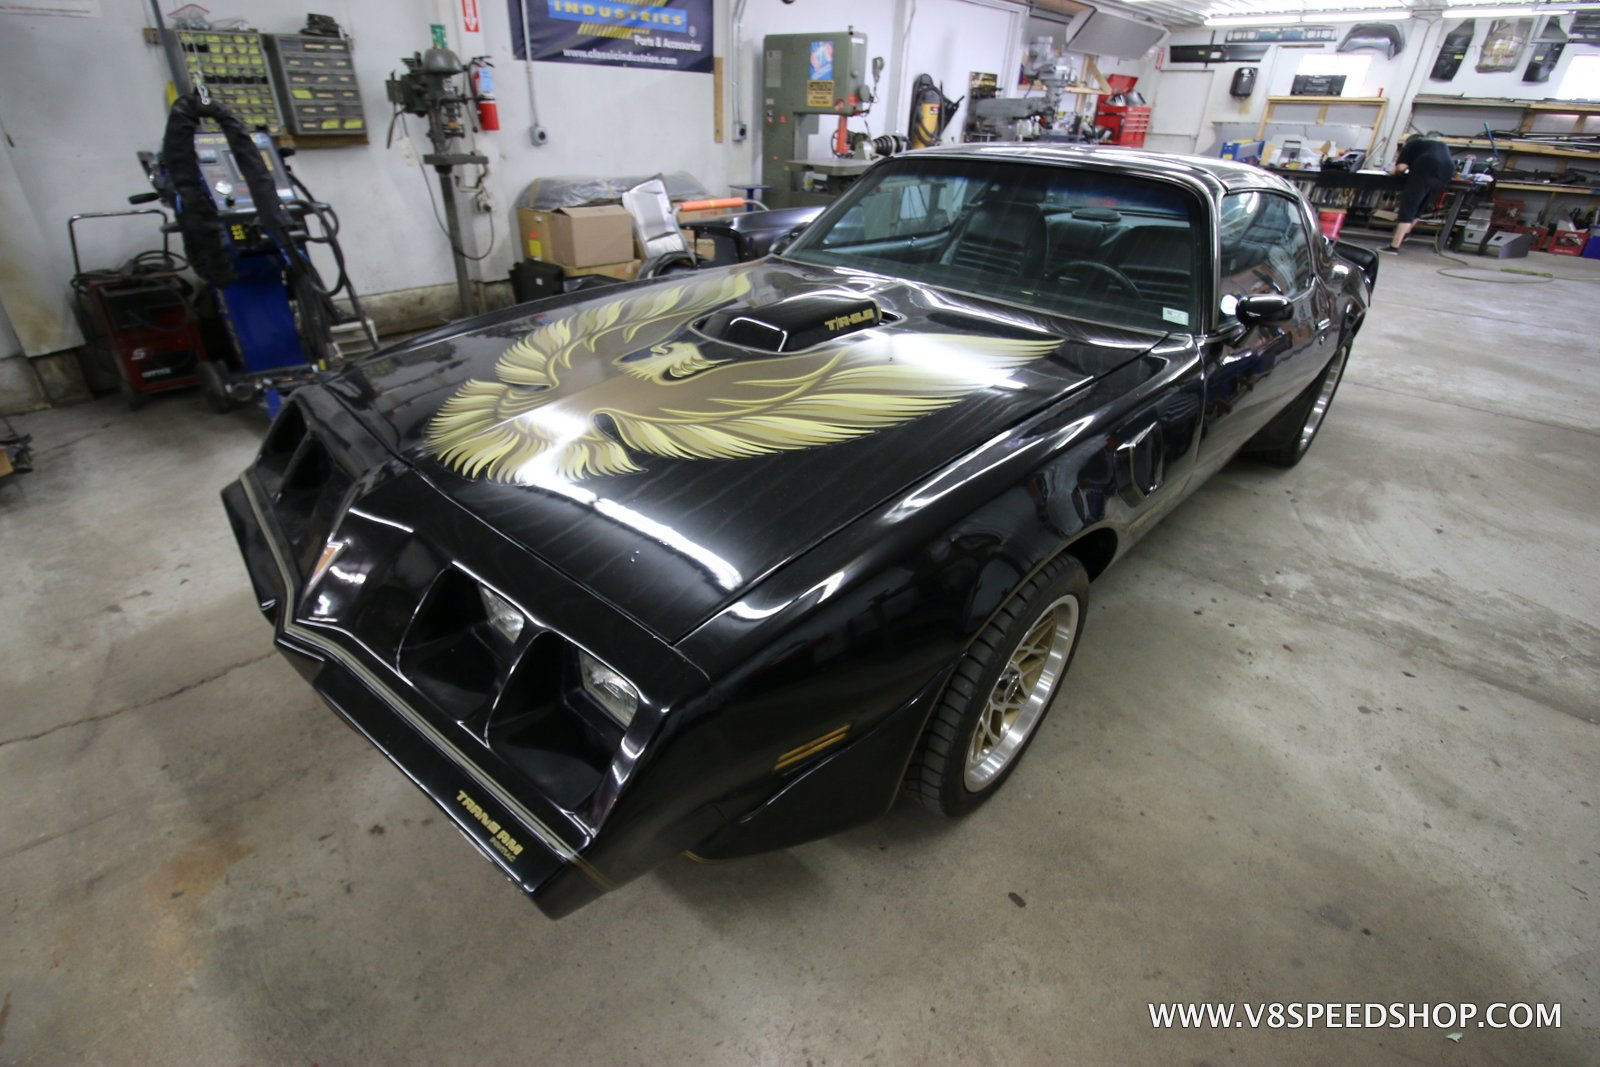 1979 Pontiac Trans Am LS3 Swap and Suspension Upgrades at V8 Speed and Resto Shop